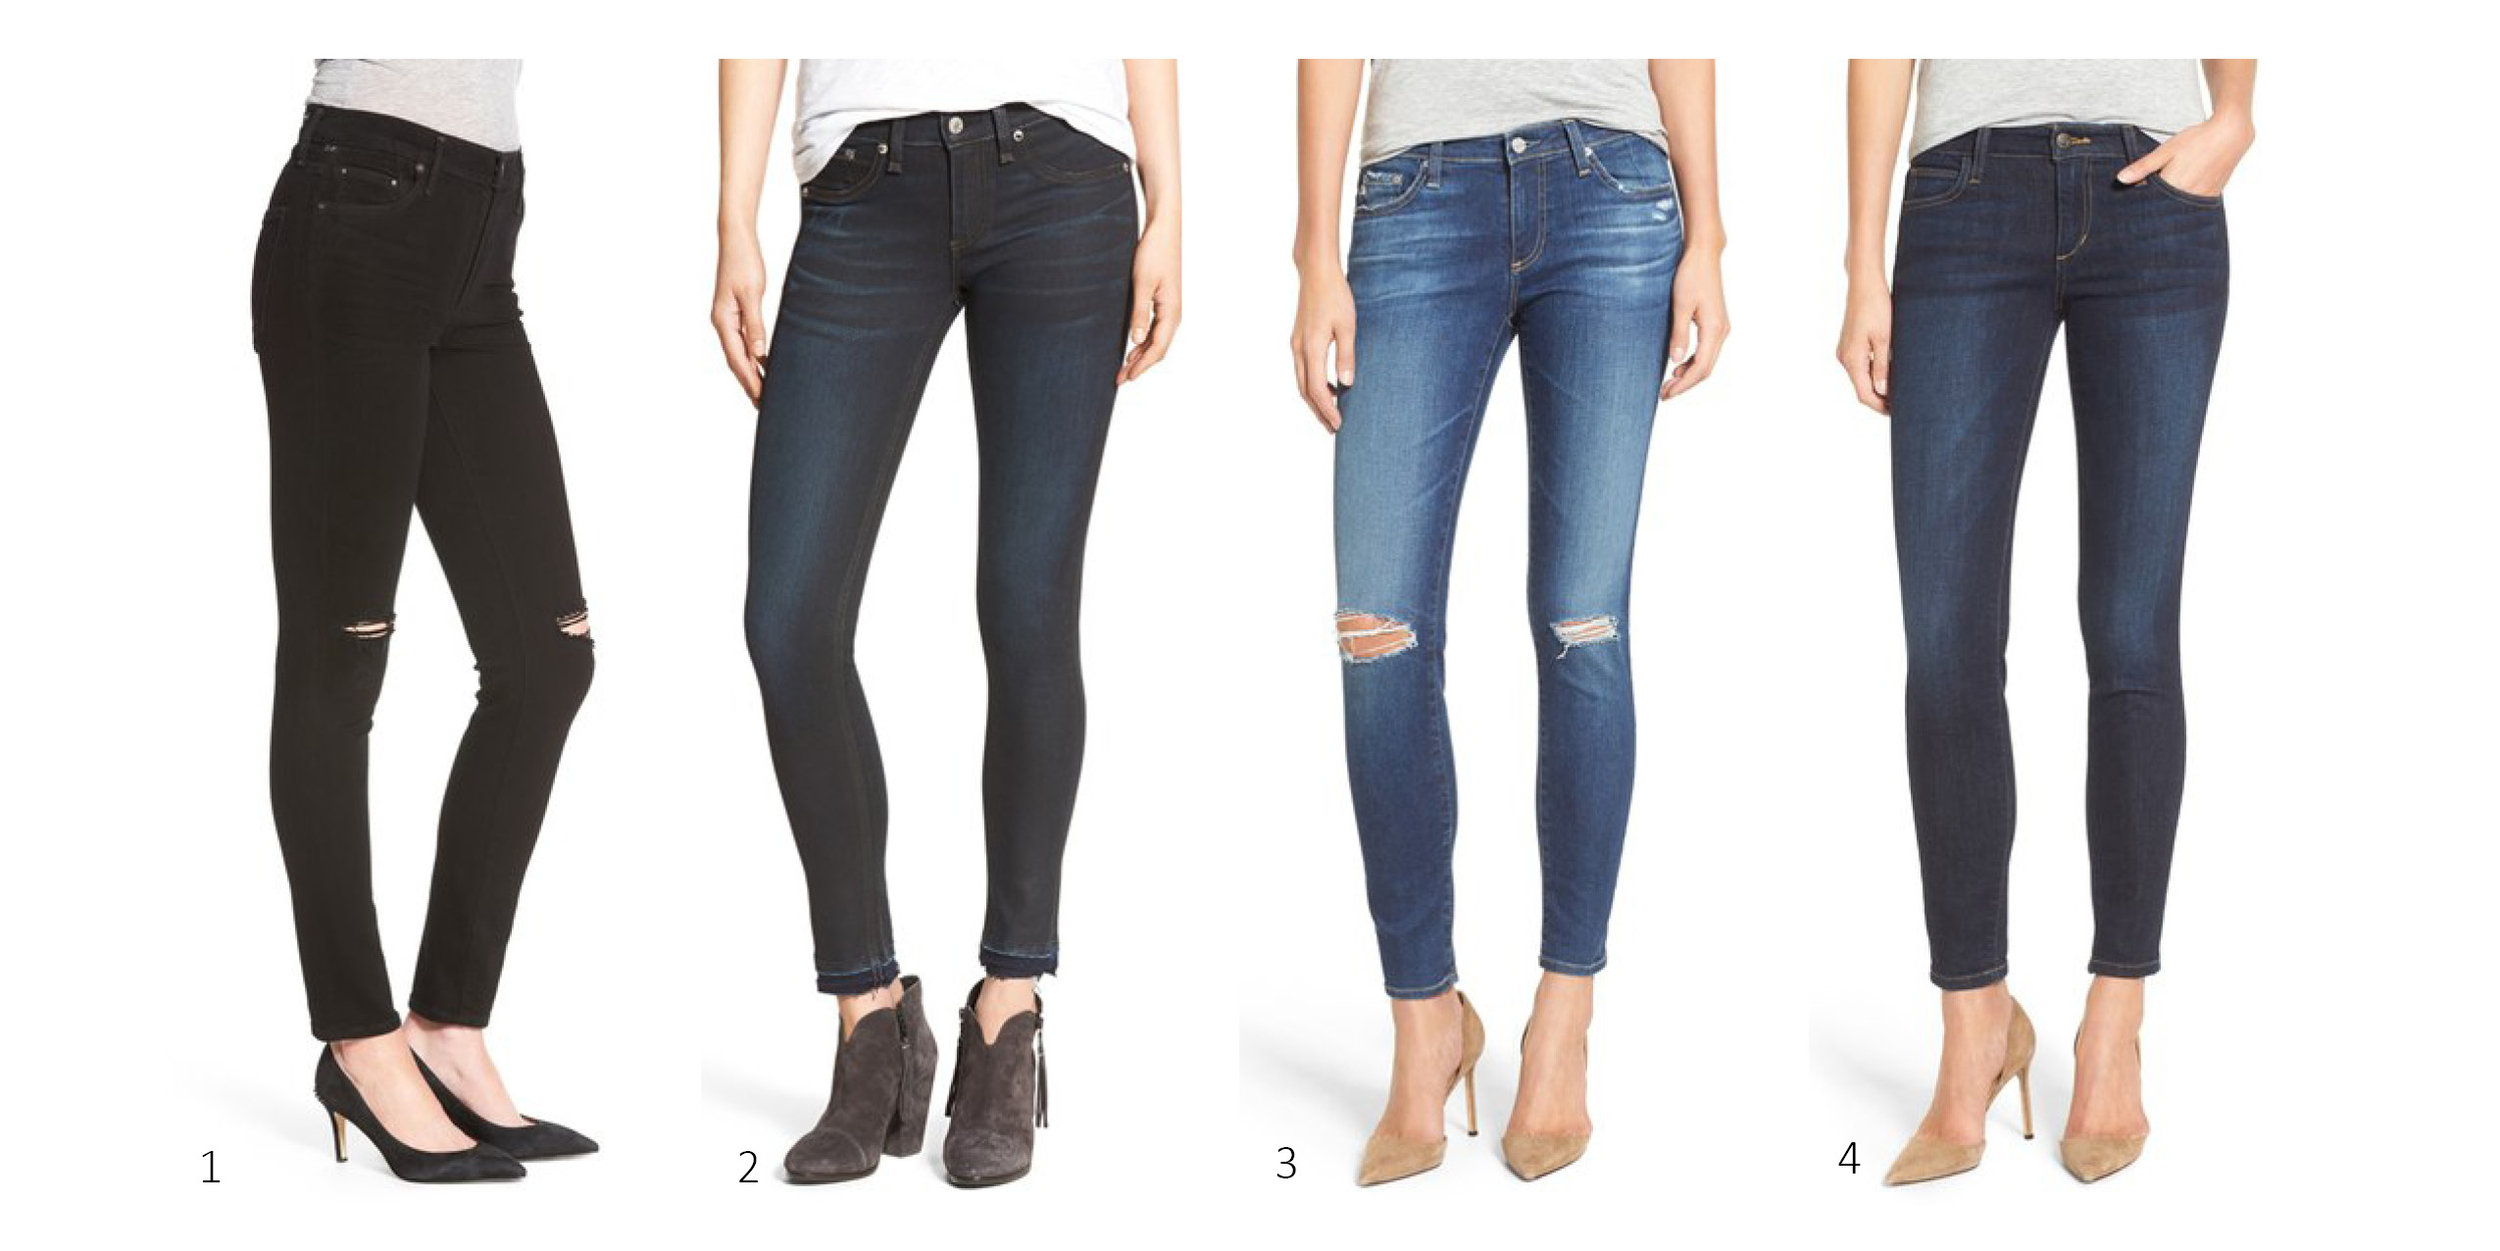 1.  Citizens of Humanity 'Rocket' Distressed Skinny Jeans $138 ;2. rag & bone The Skinny $165;3. AG 'The Legging' Ankle Jeans (10 years recreation)$163.90 ; 4.  Joe's Skinny Ankle Jeans $99